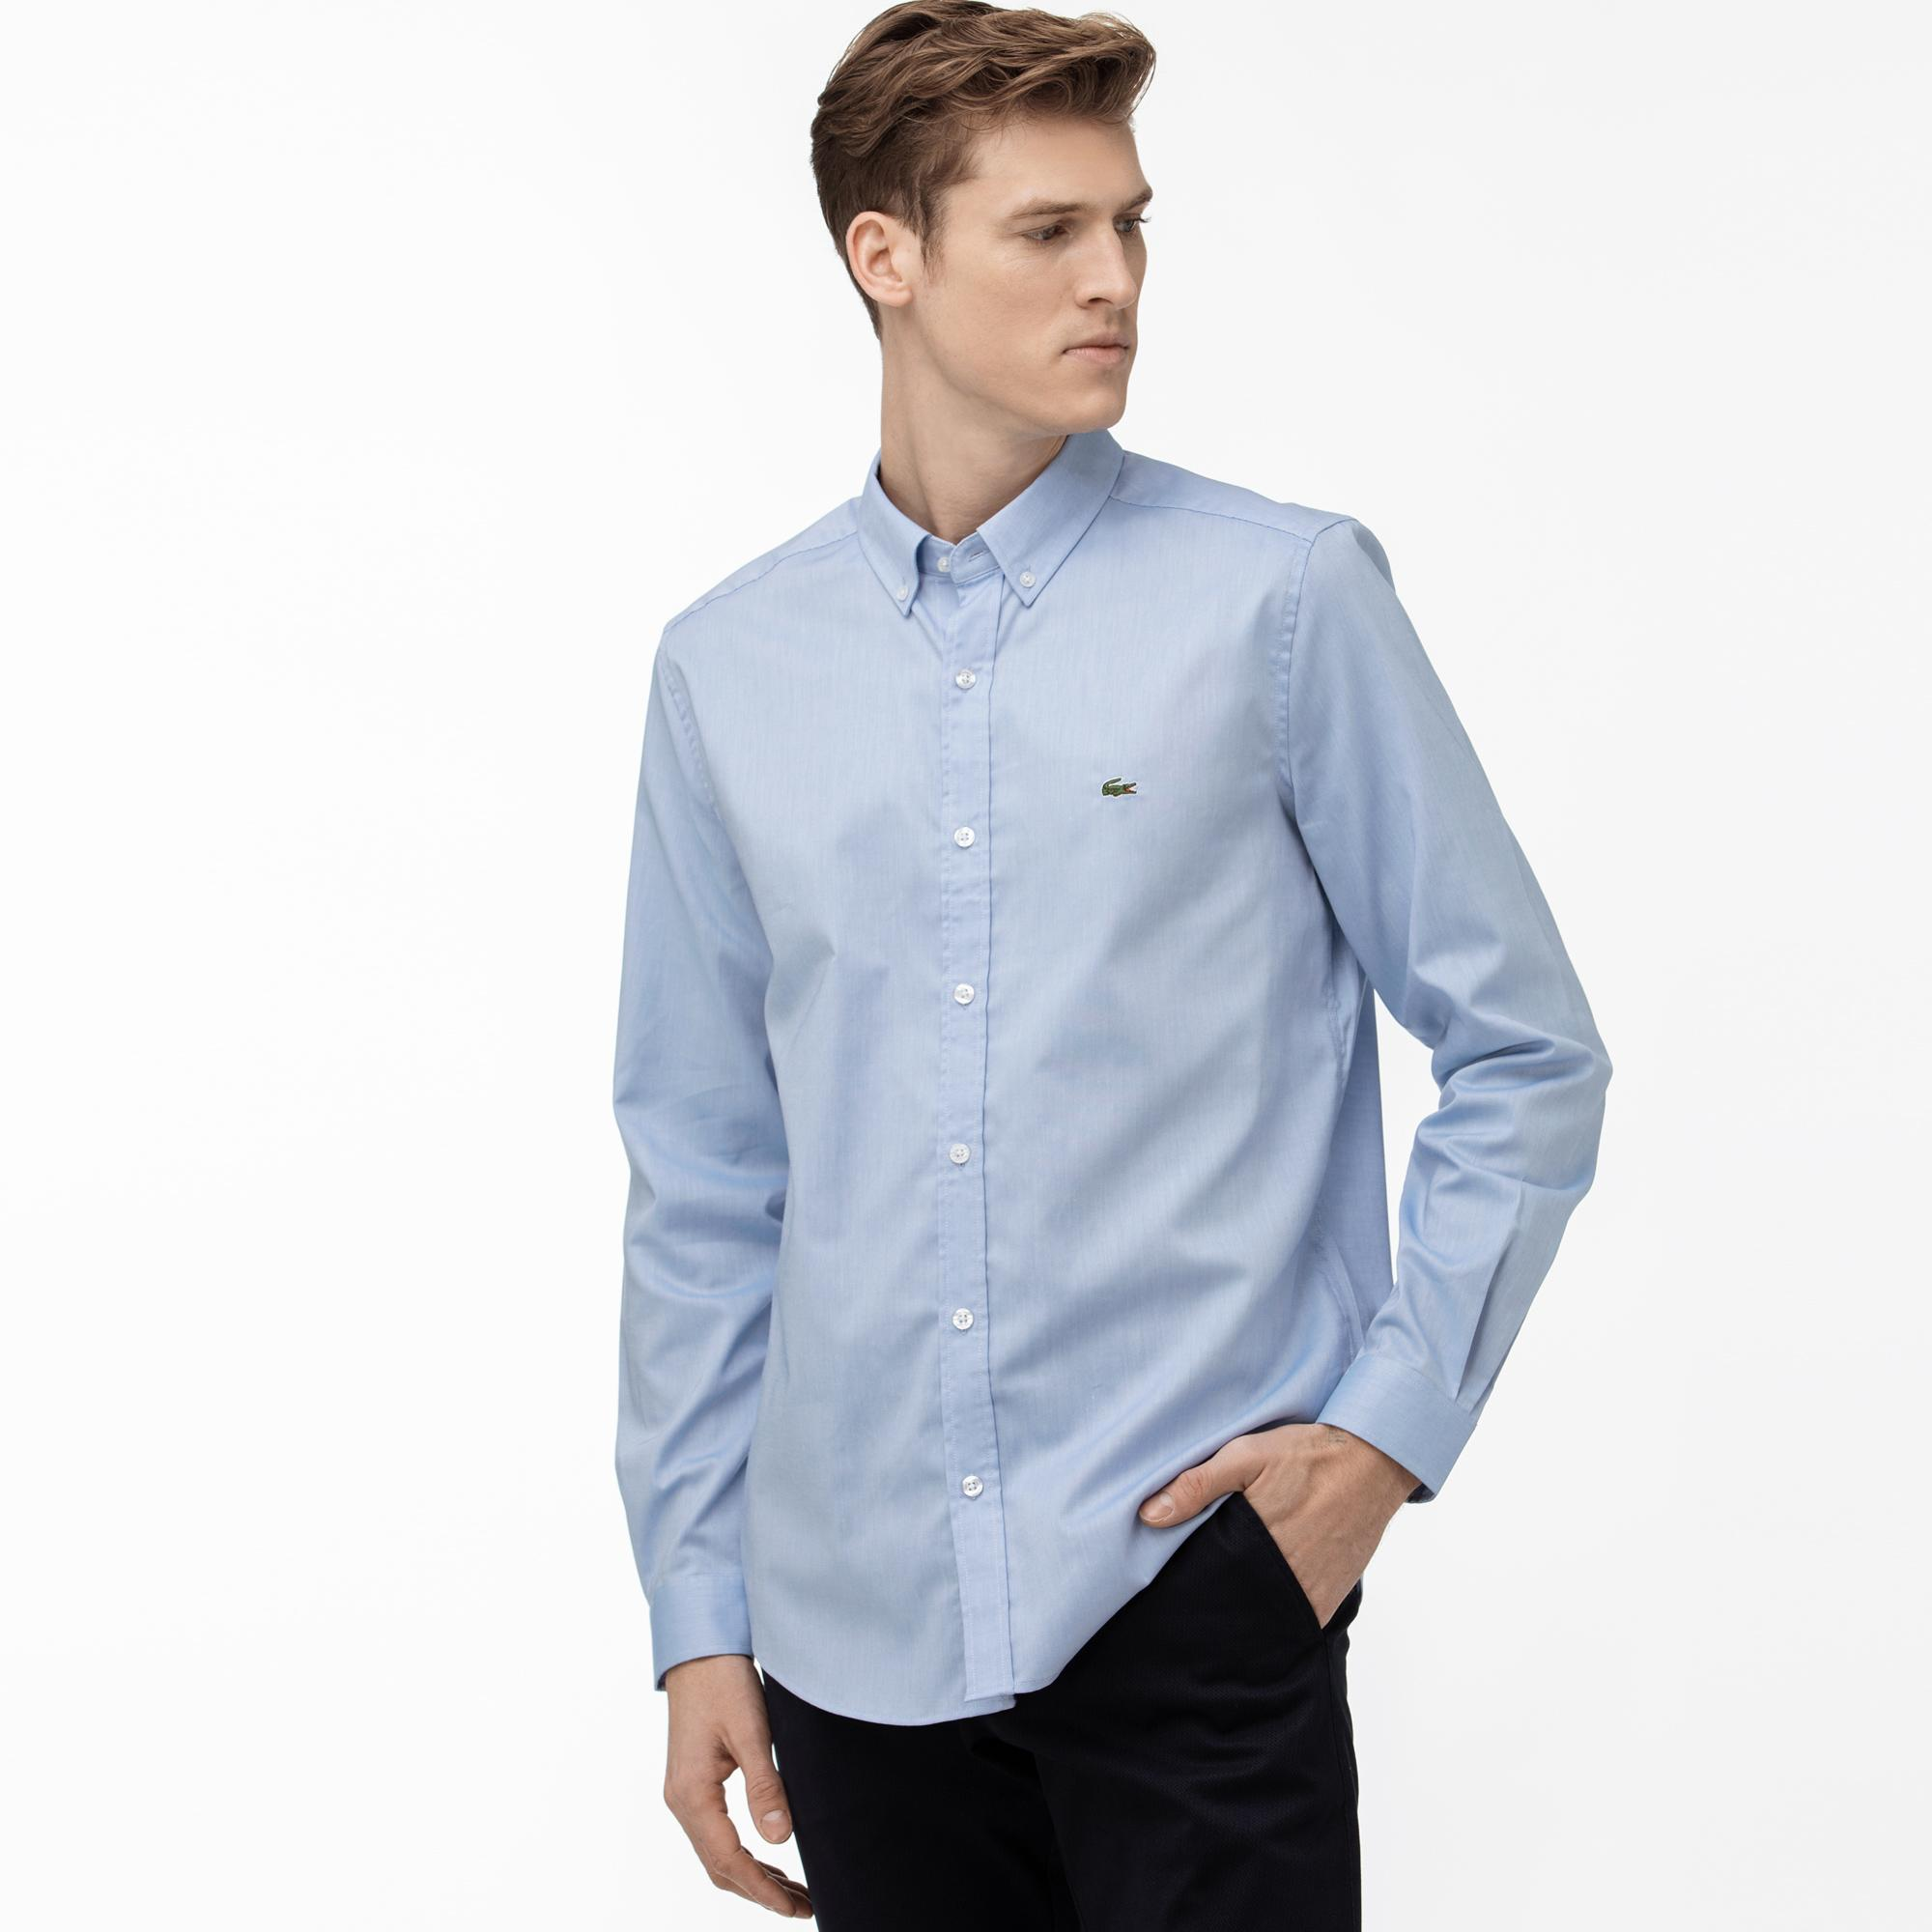 Lacoste Men's Regular Fit Cotton Oxford Shirt